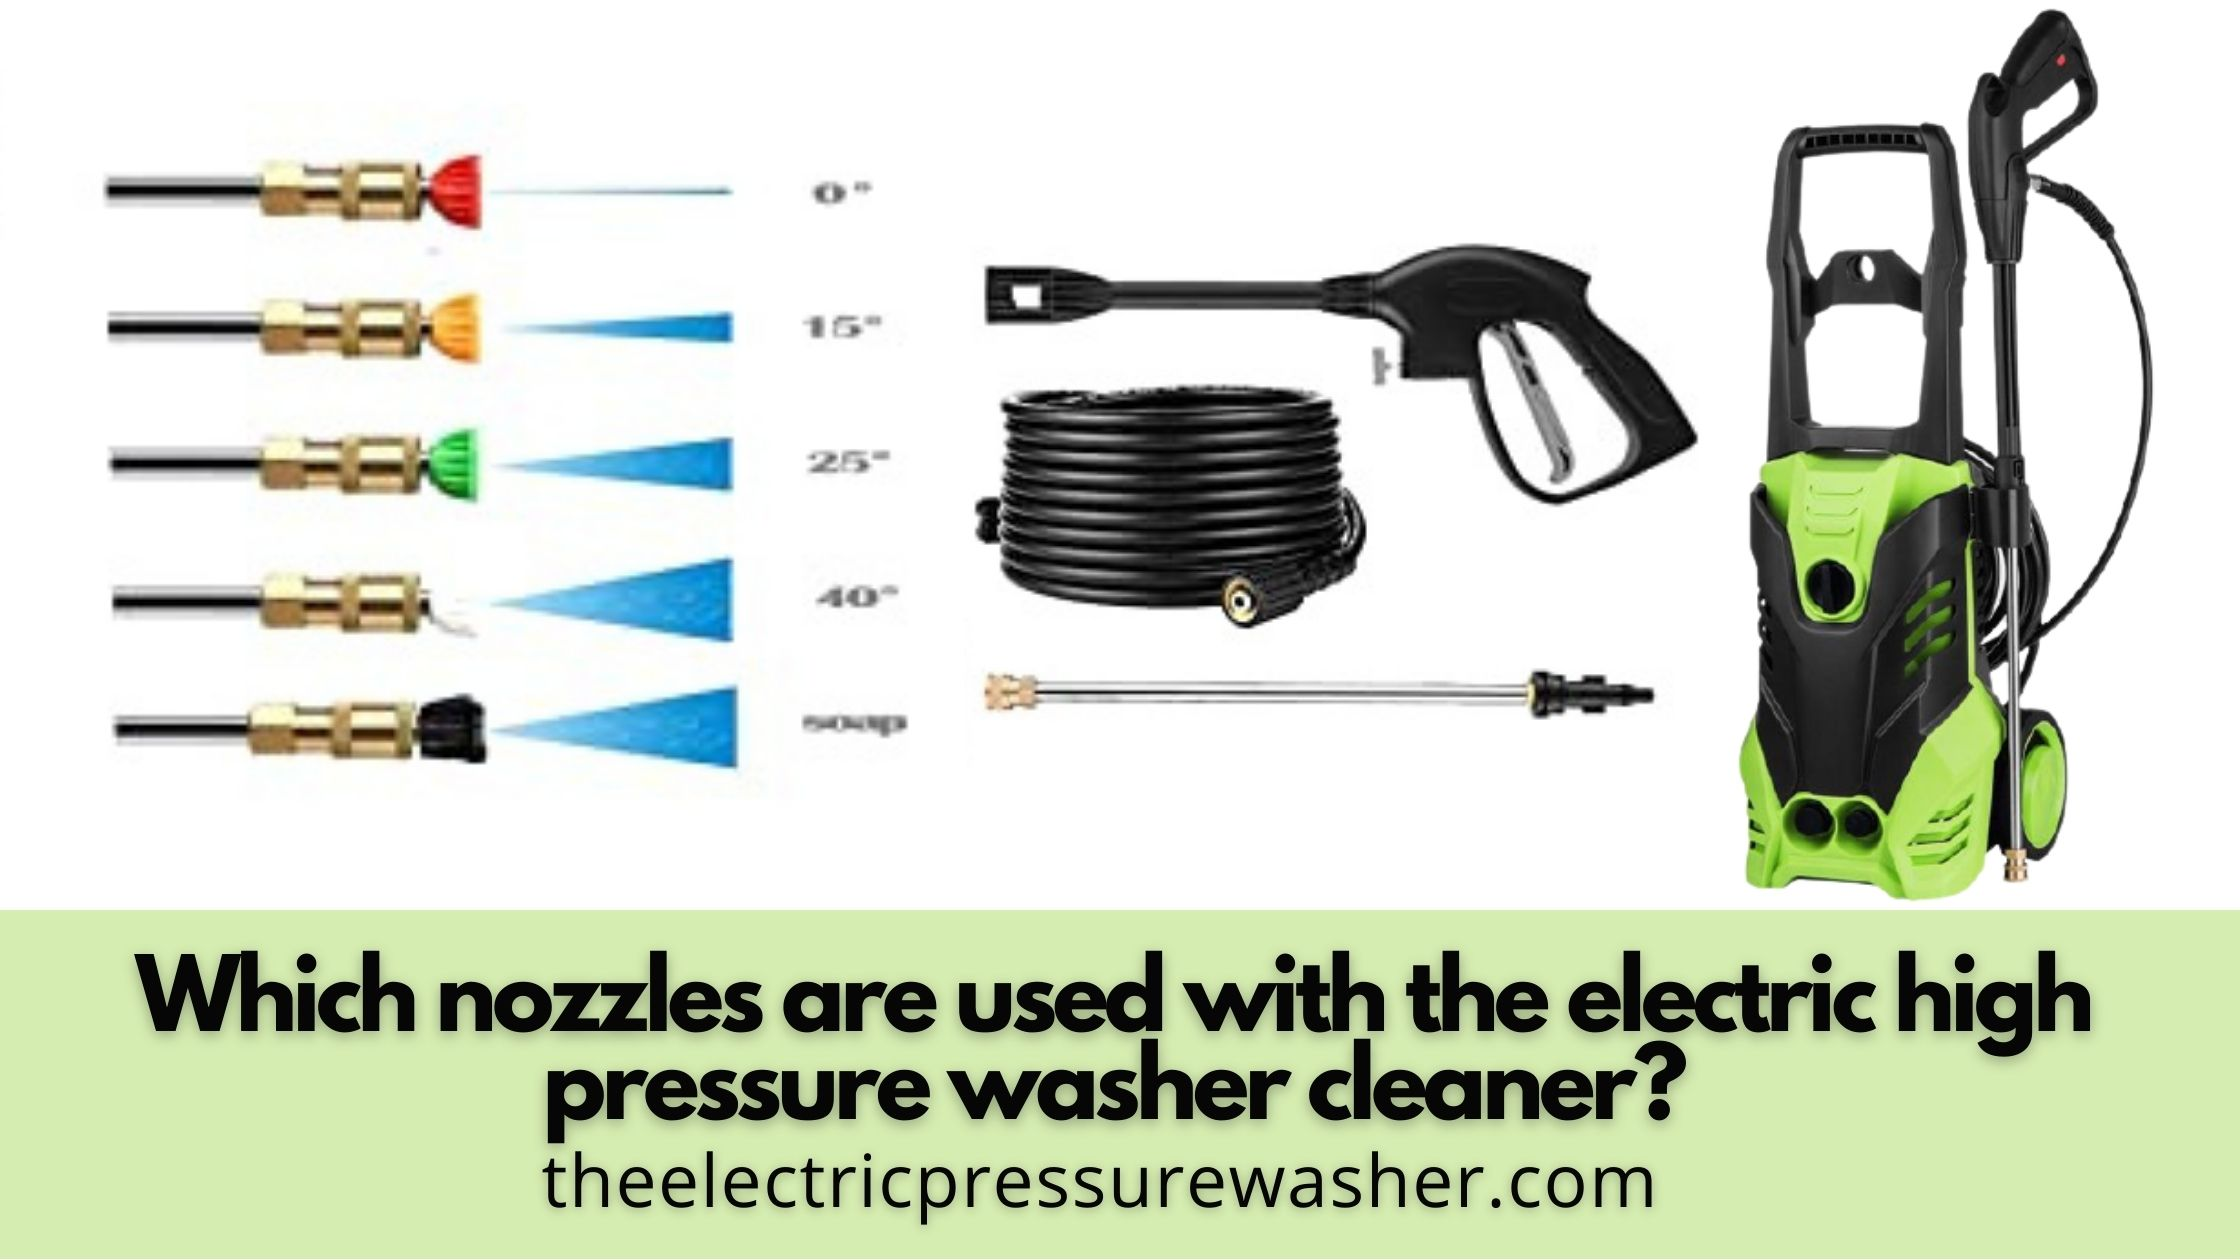 nozzles for pressure washer